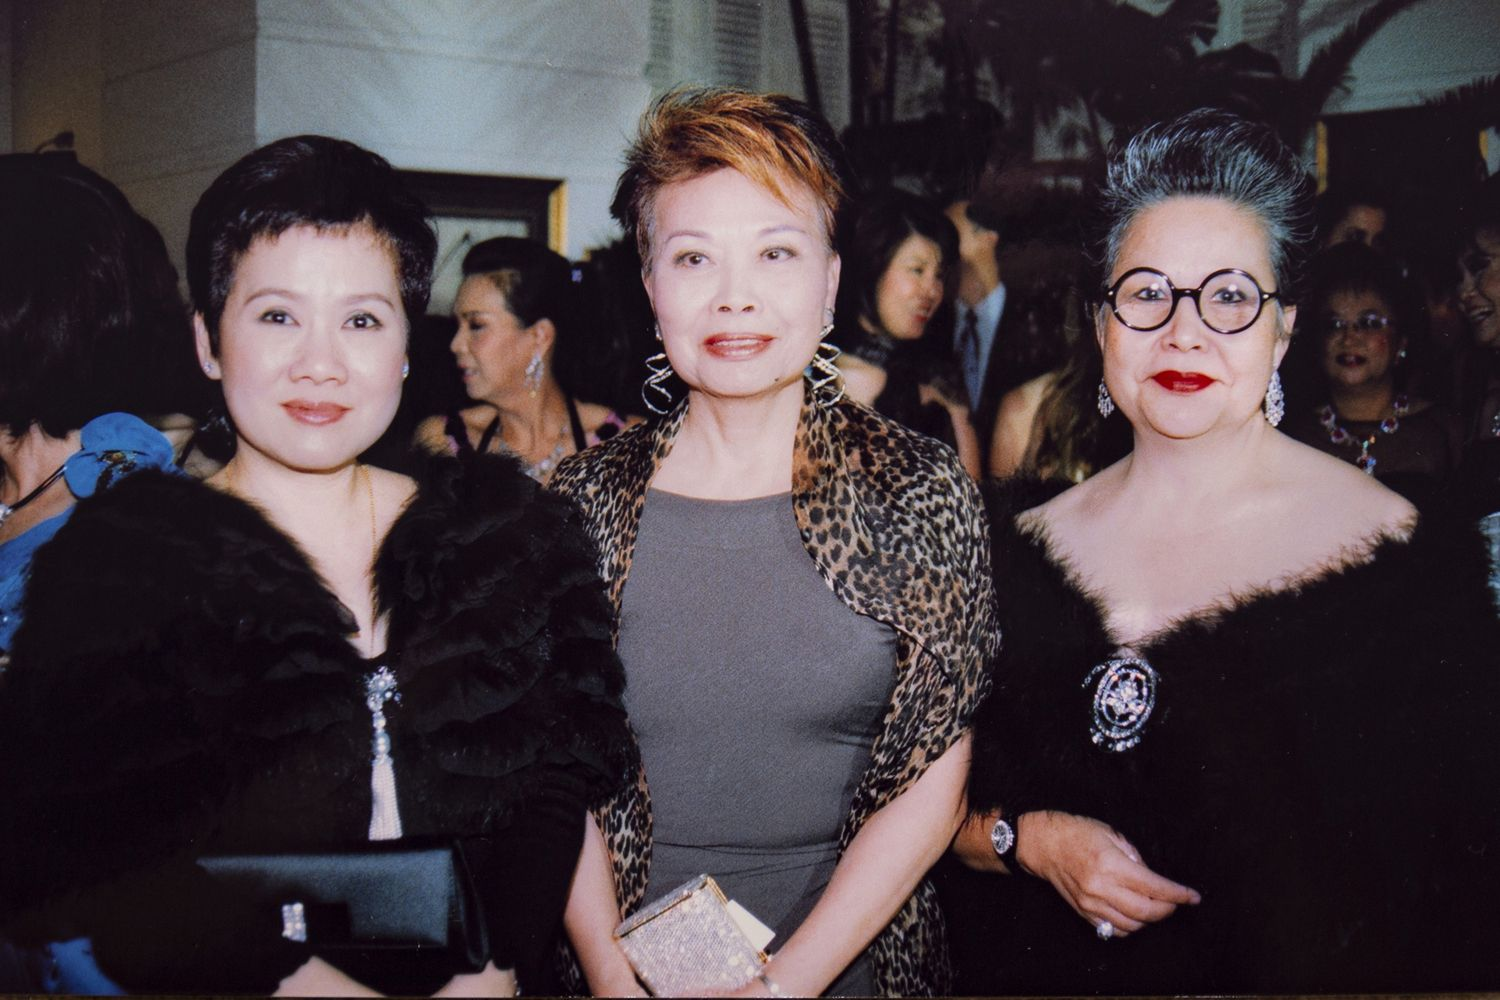 Tatler Then And Now: Chitra Konuntakiet, Chitramontn Techaphaiboon and Tipaporn Ajanant